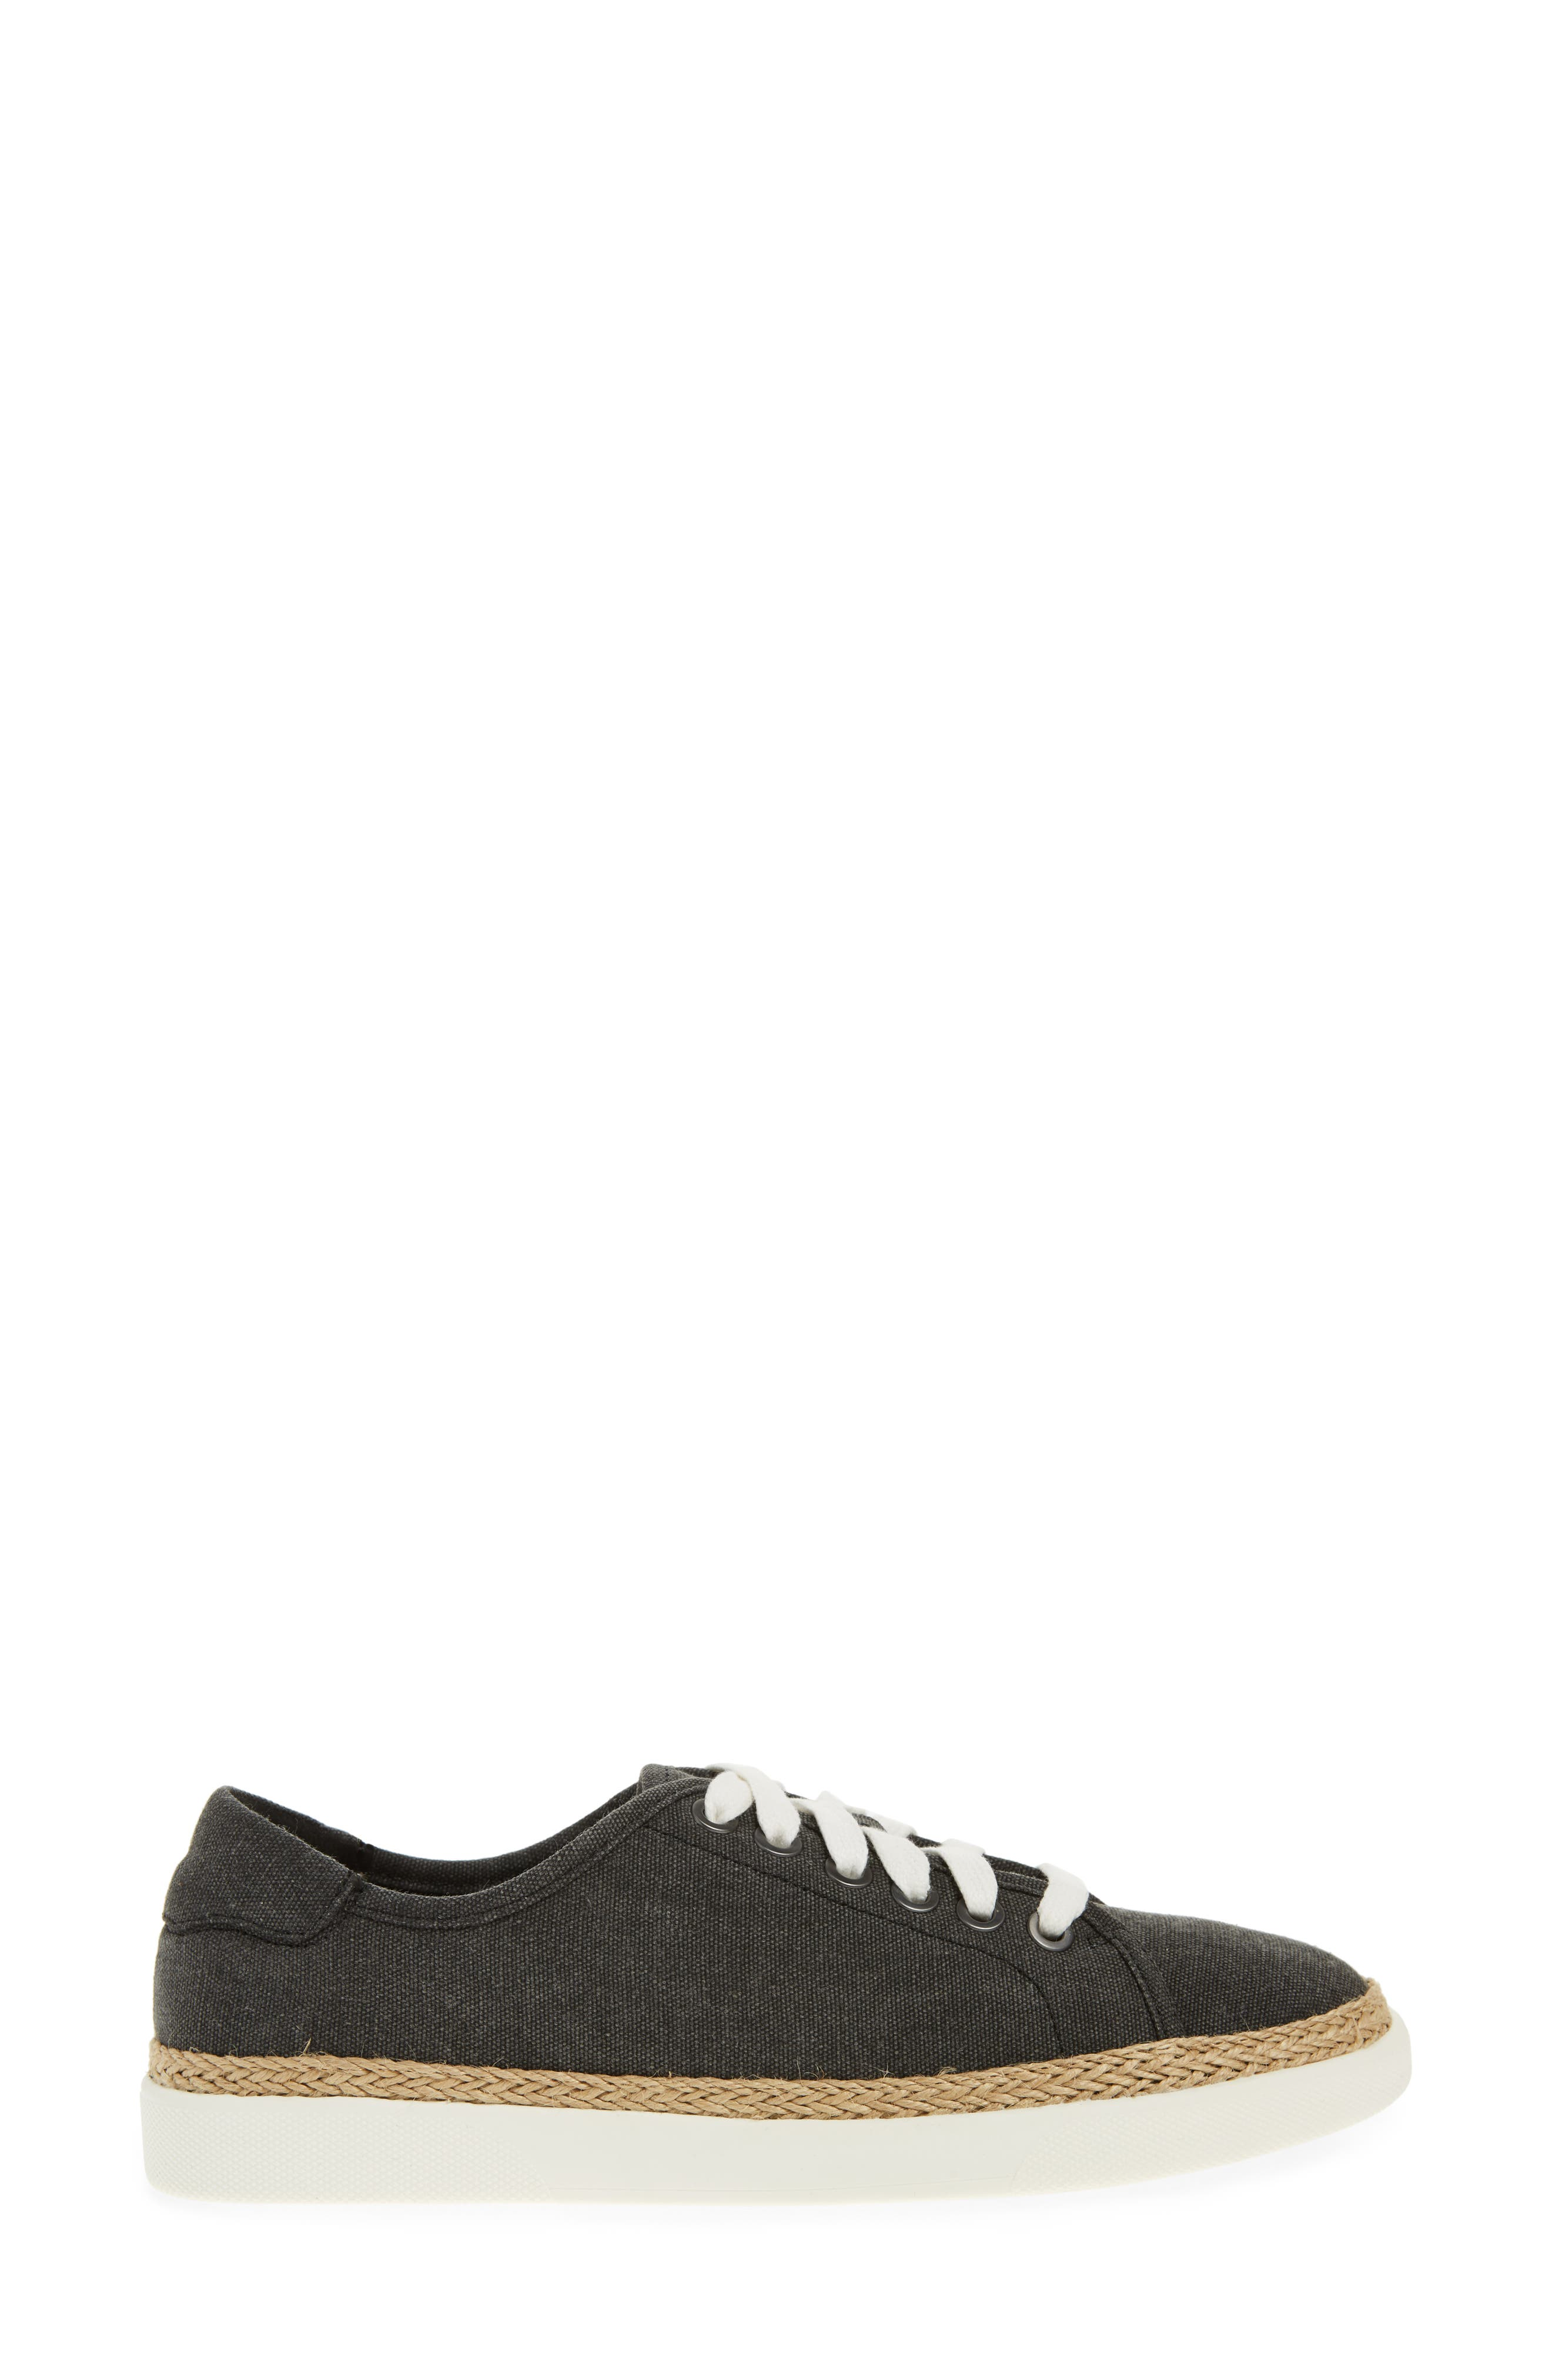 Hattie Sneaker,                             Alternate thumbnail 3, color,                             Black Canvas